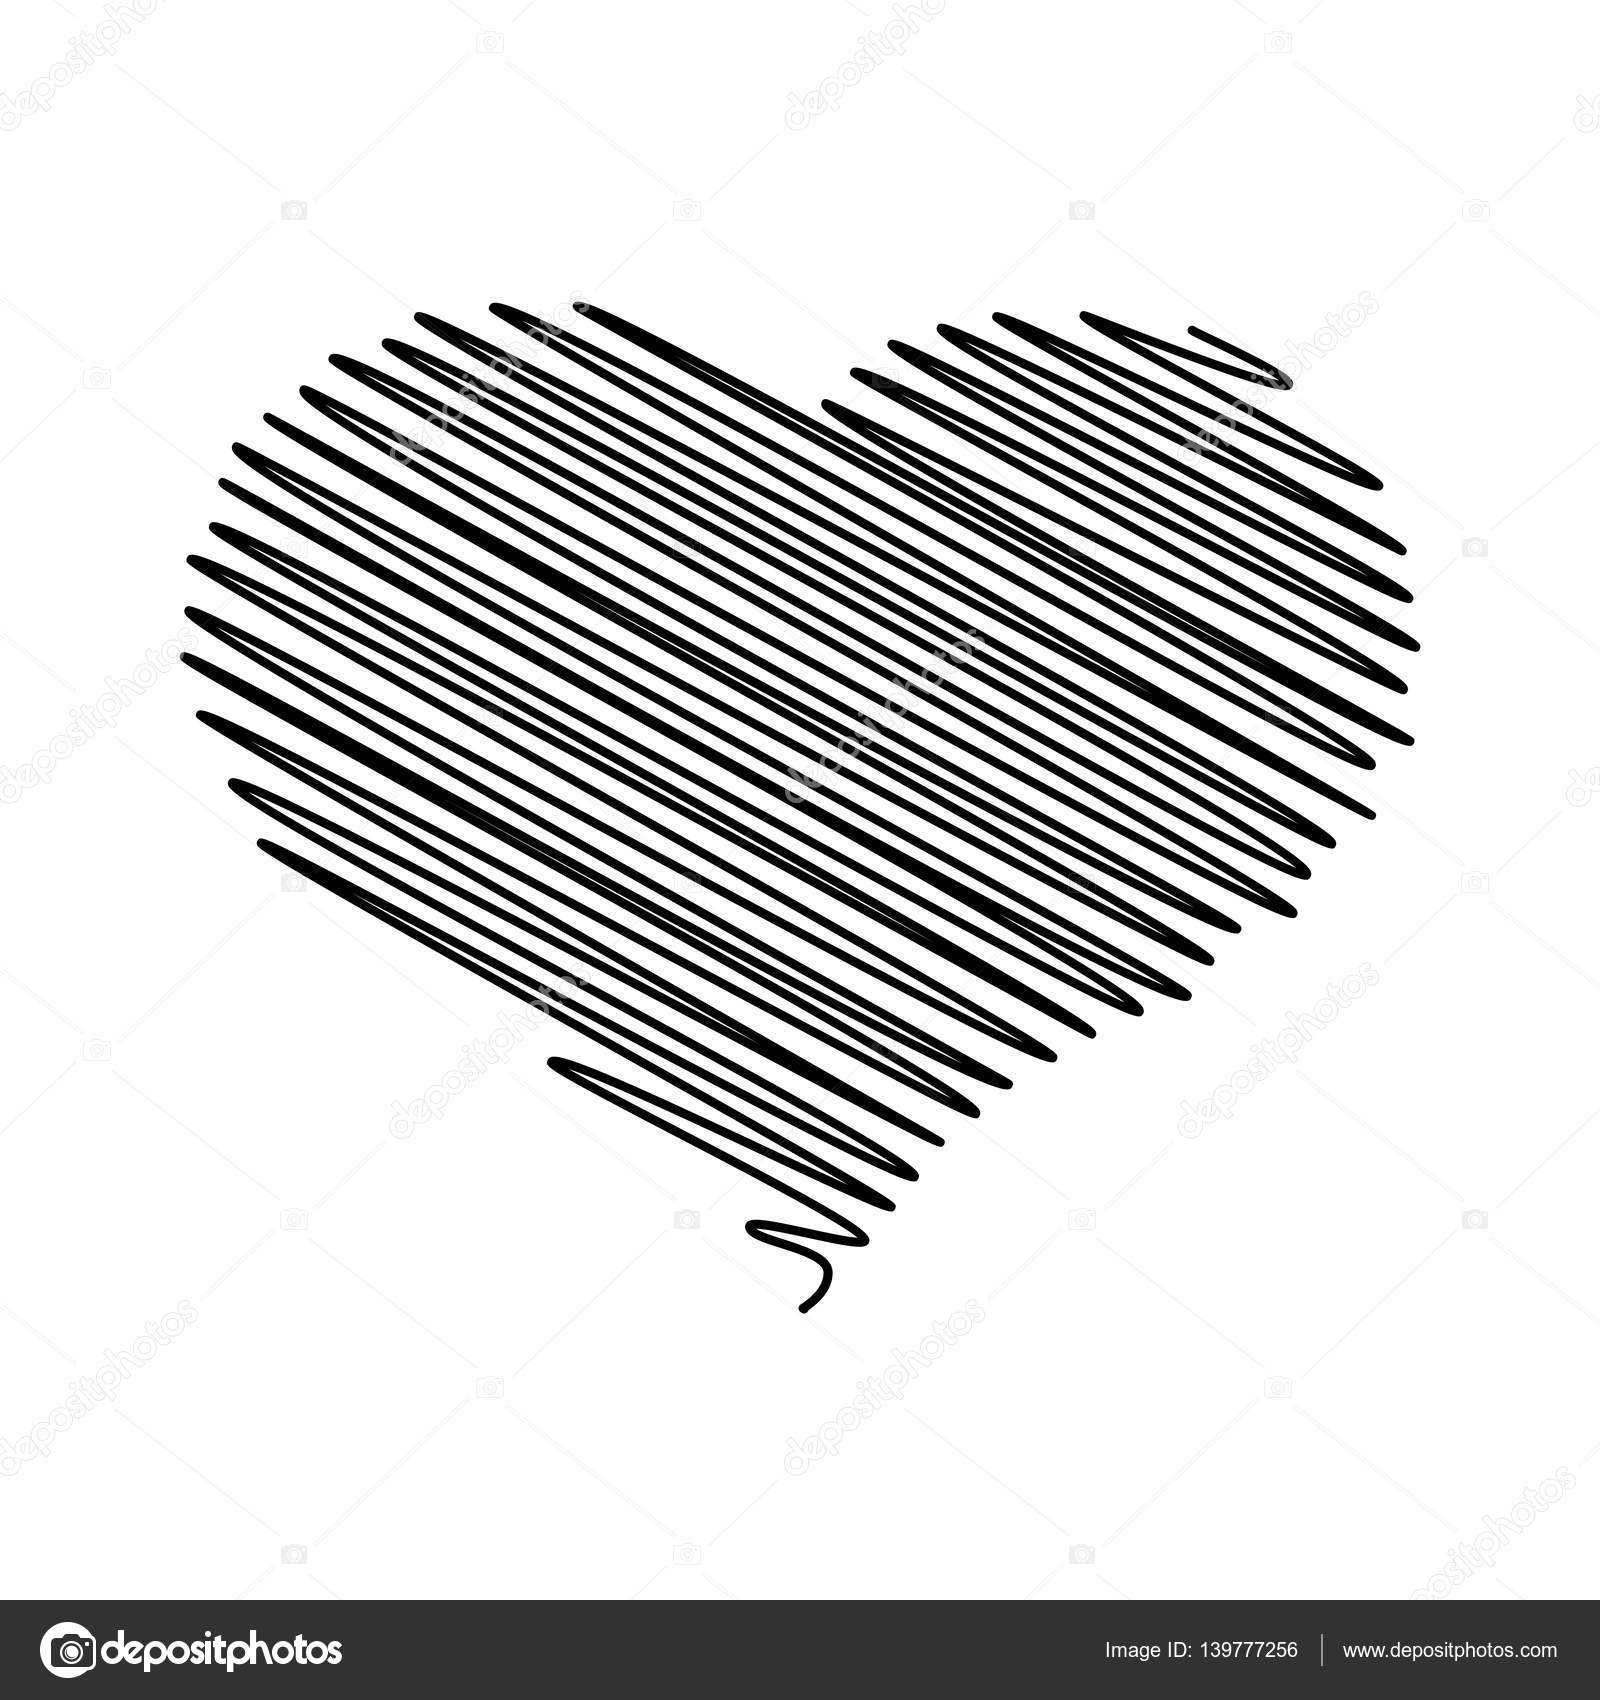 Heart pencil scribble sketch drawing in black on white